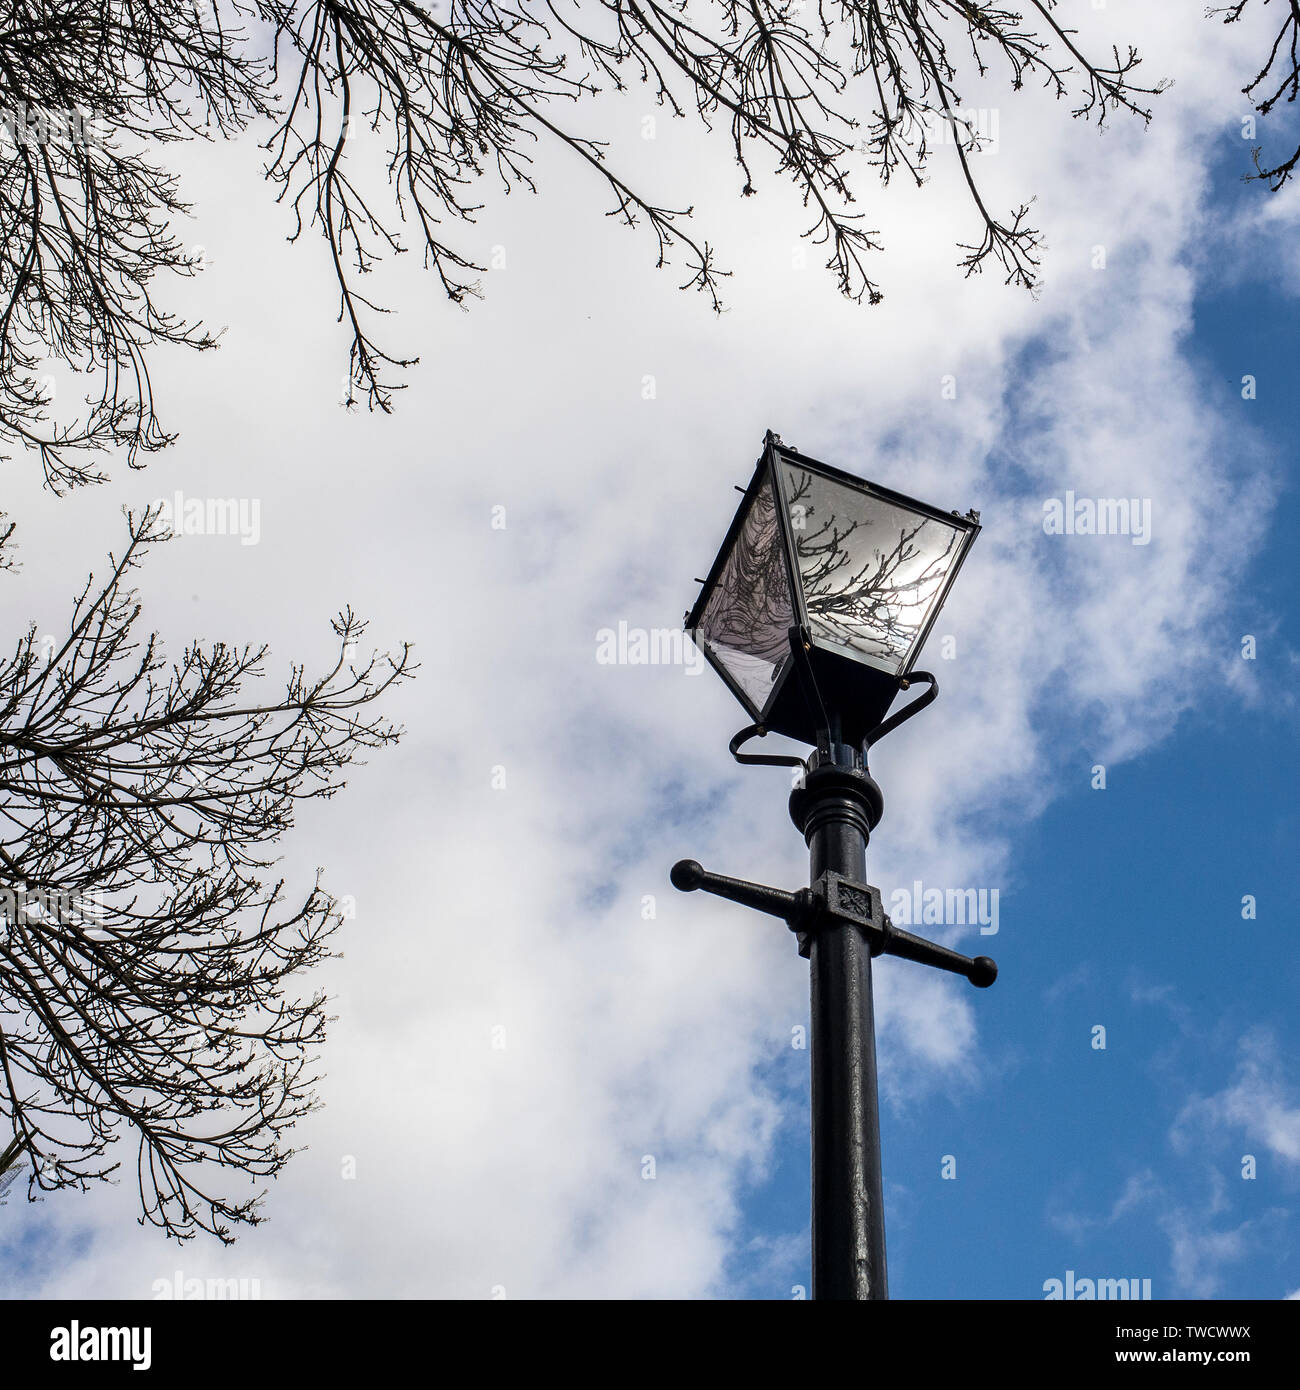 Victorian Lamp Post, london converted  Victorian gas street lamp. Stock Photo